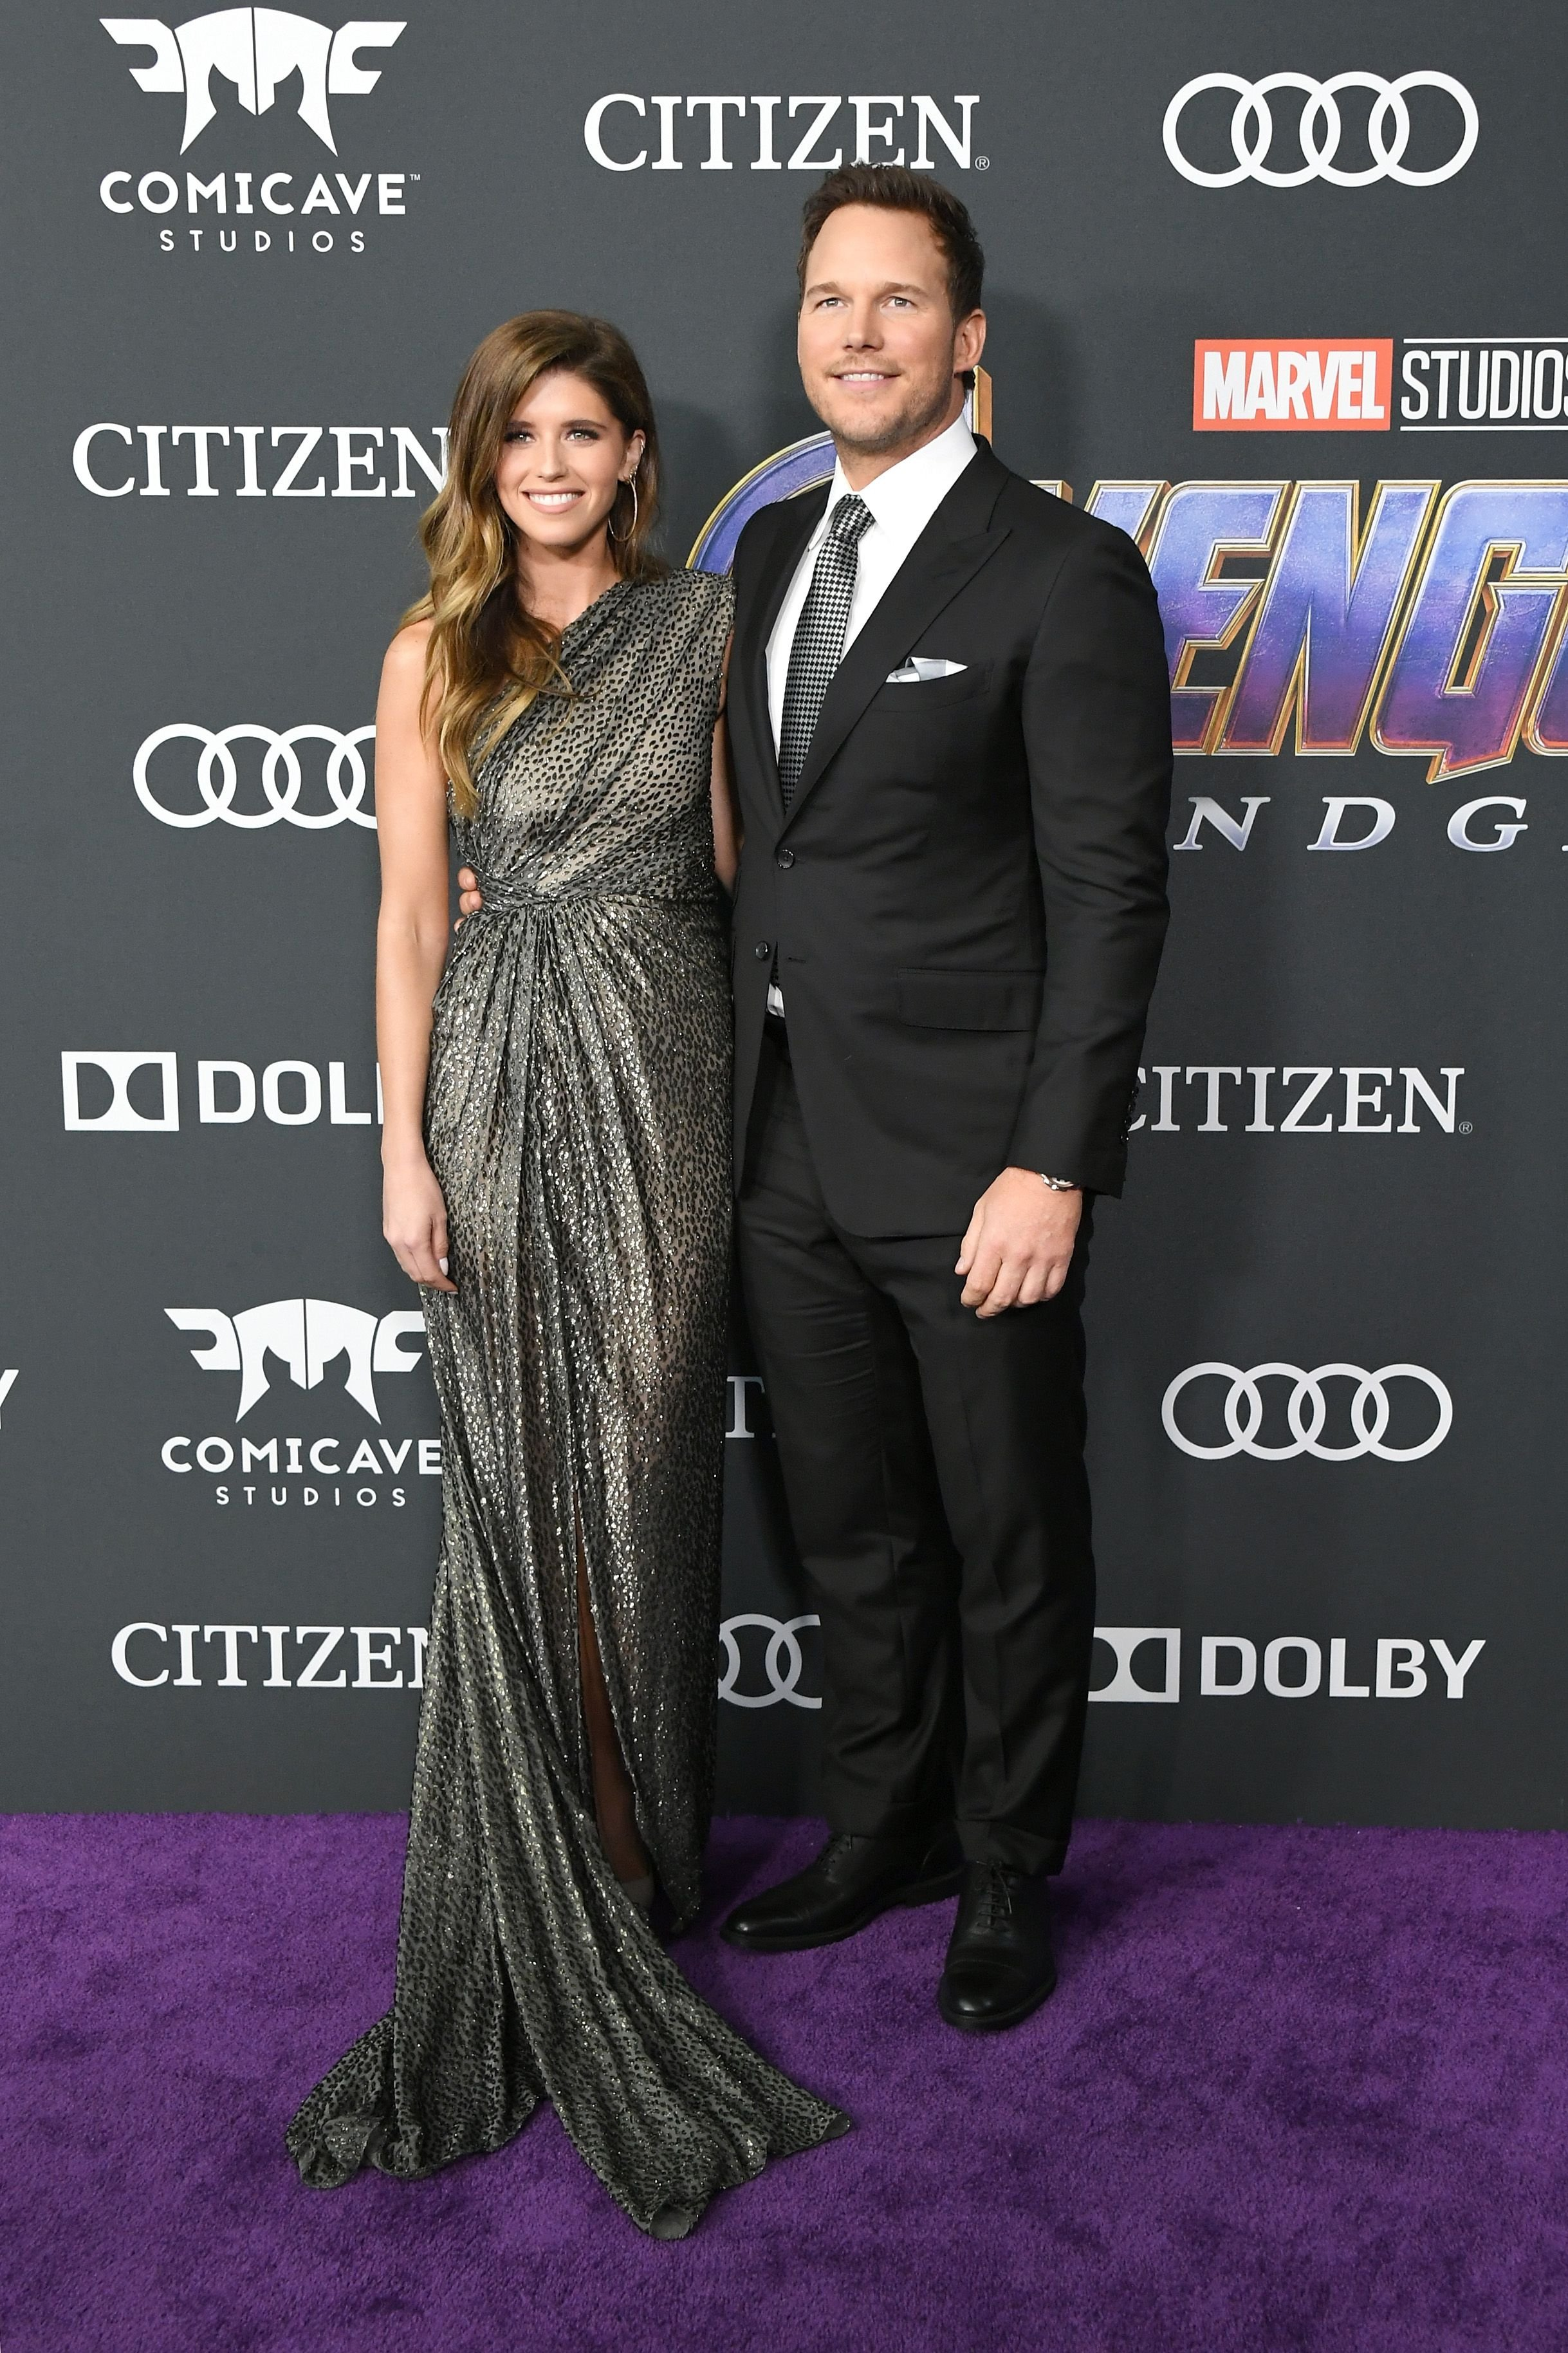 """Katherine Schwarzenegger and Chris Pratt at the world premiere of """"Avengers: Endgame"""" at the Los Angeles Convention Center on April 22, 2019 